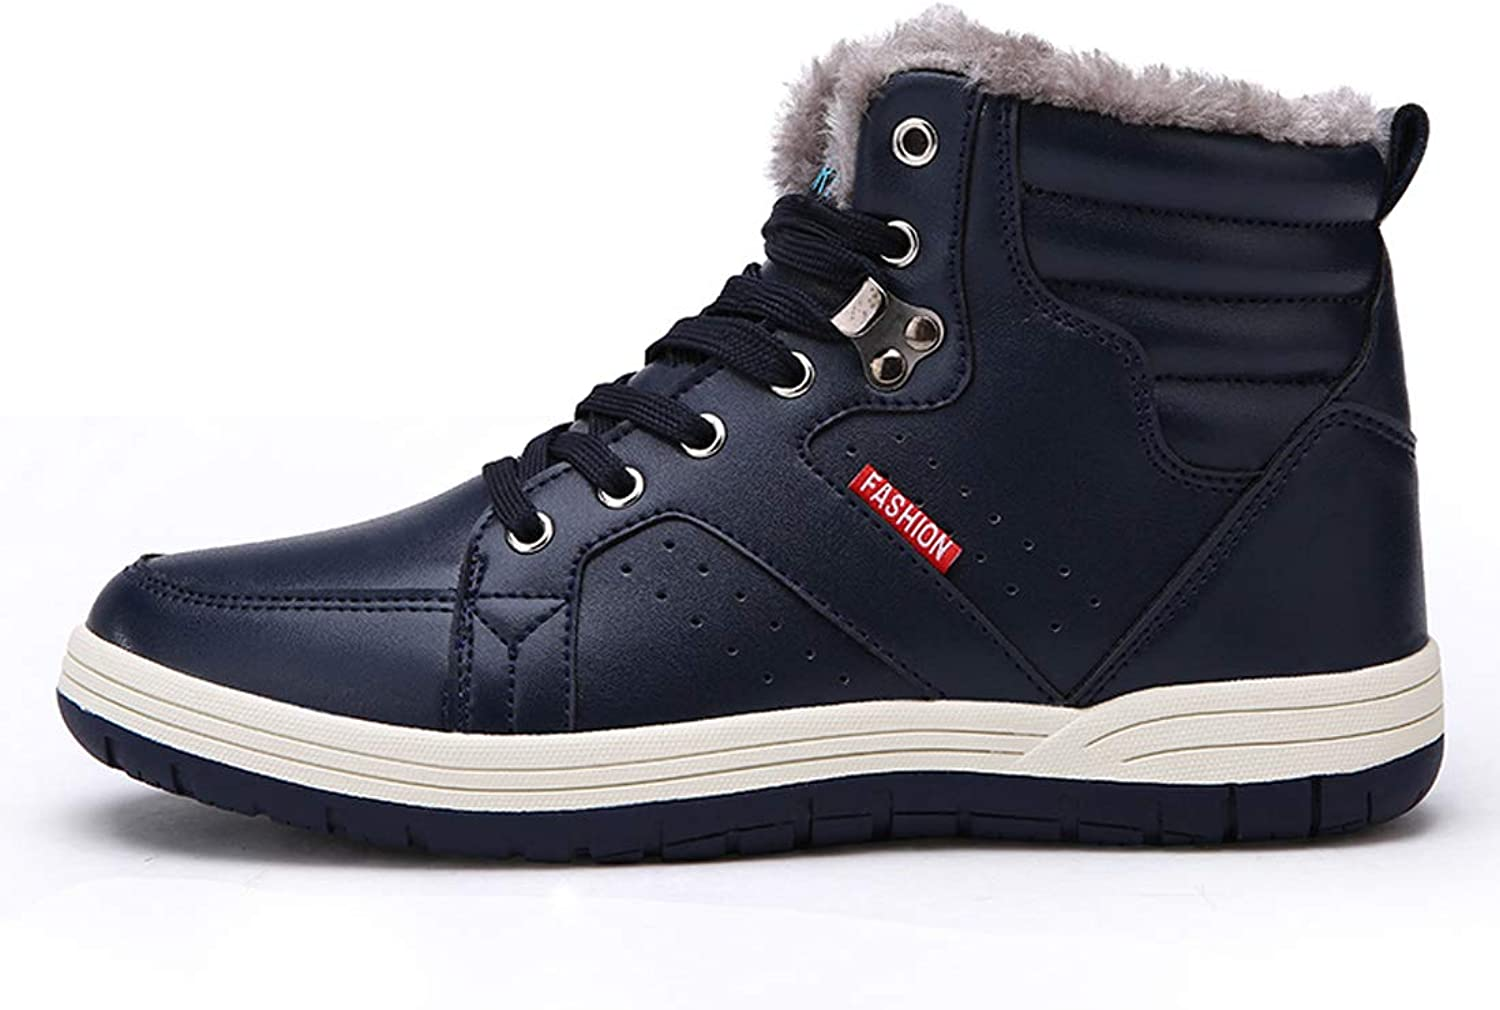 Ceyue Mens Leather Snow Boots Lace up Ankle Sneakers High Top Winter shoes with Fur Lining